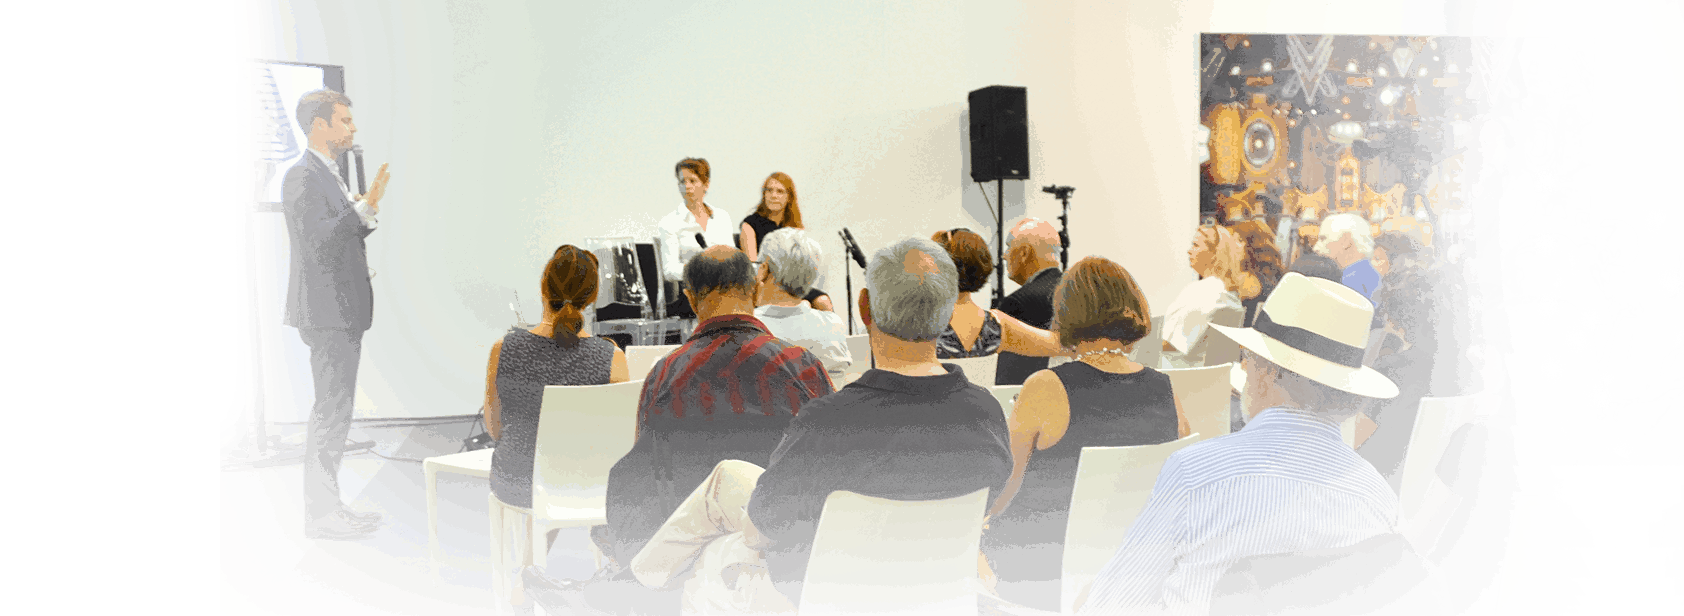 1AN-symposium-at-Art-New-York-2016